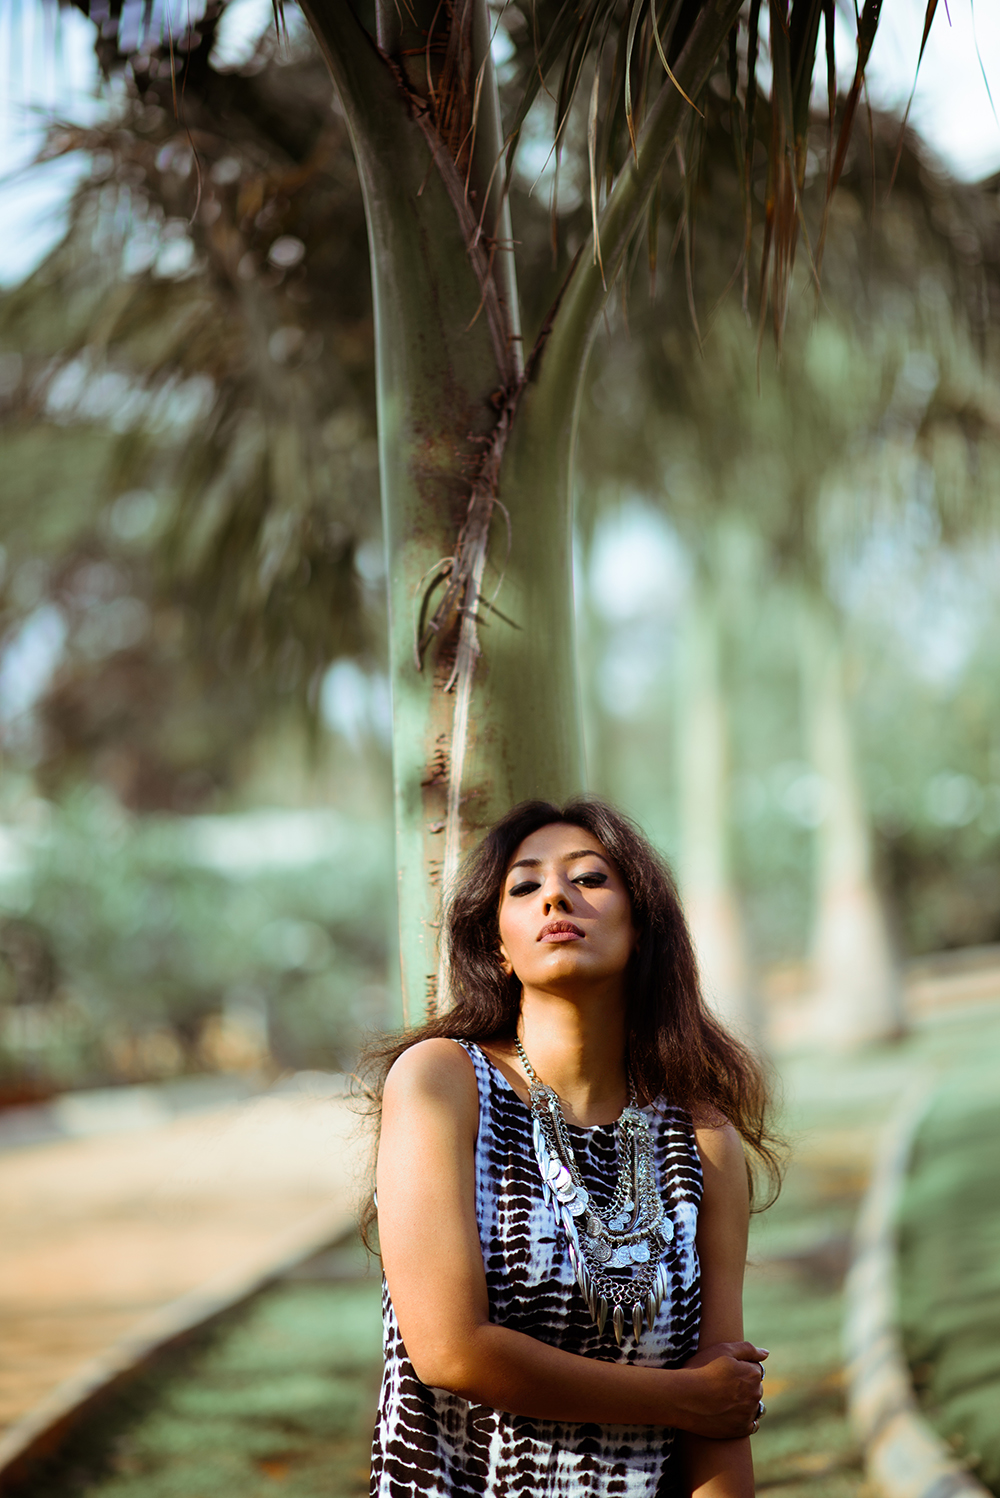 Lookbook ; Bohemian ; Dress ; Maxi ; Tie Dye ; Outfit ; Tan ; Gladiators ; Tribal Necklace ; fashion photography ; palm trees ; resort wear ; Roving Mode ; dusk ; editorial ; strong ; Dark ; summer fashion ; summer outfit ; spring ; summer 17 boho look ; Naznin ; Naznin Suhaer ; dusky; model ; indian blogger ; hyderabad fashion bloggers ; hyderabad bloggers ; hyderabad fashion blogger ; I Dress for the Applause ;